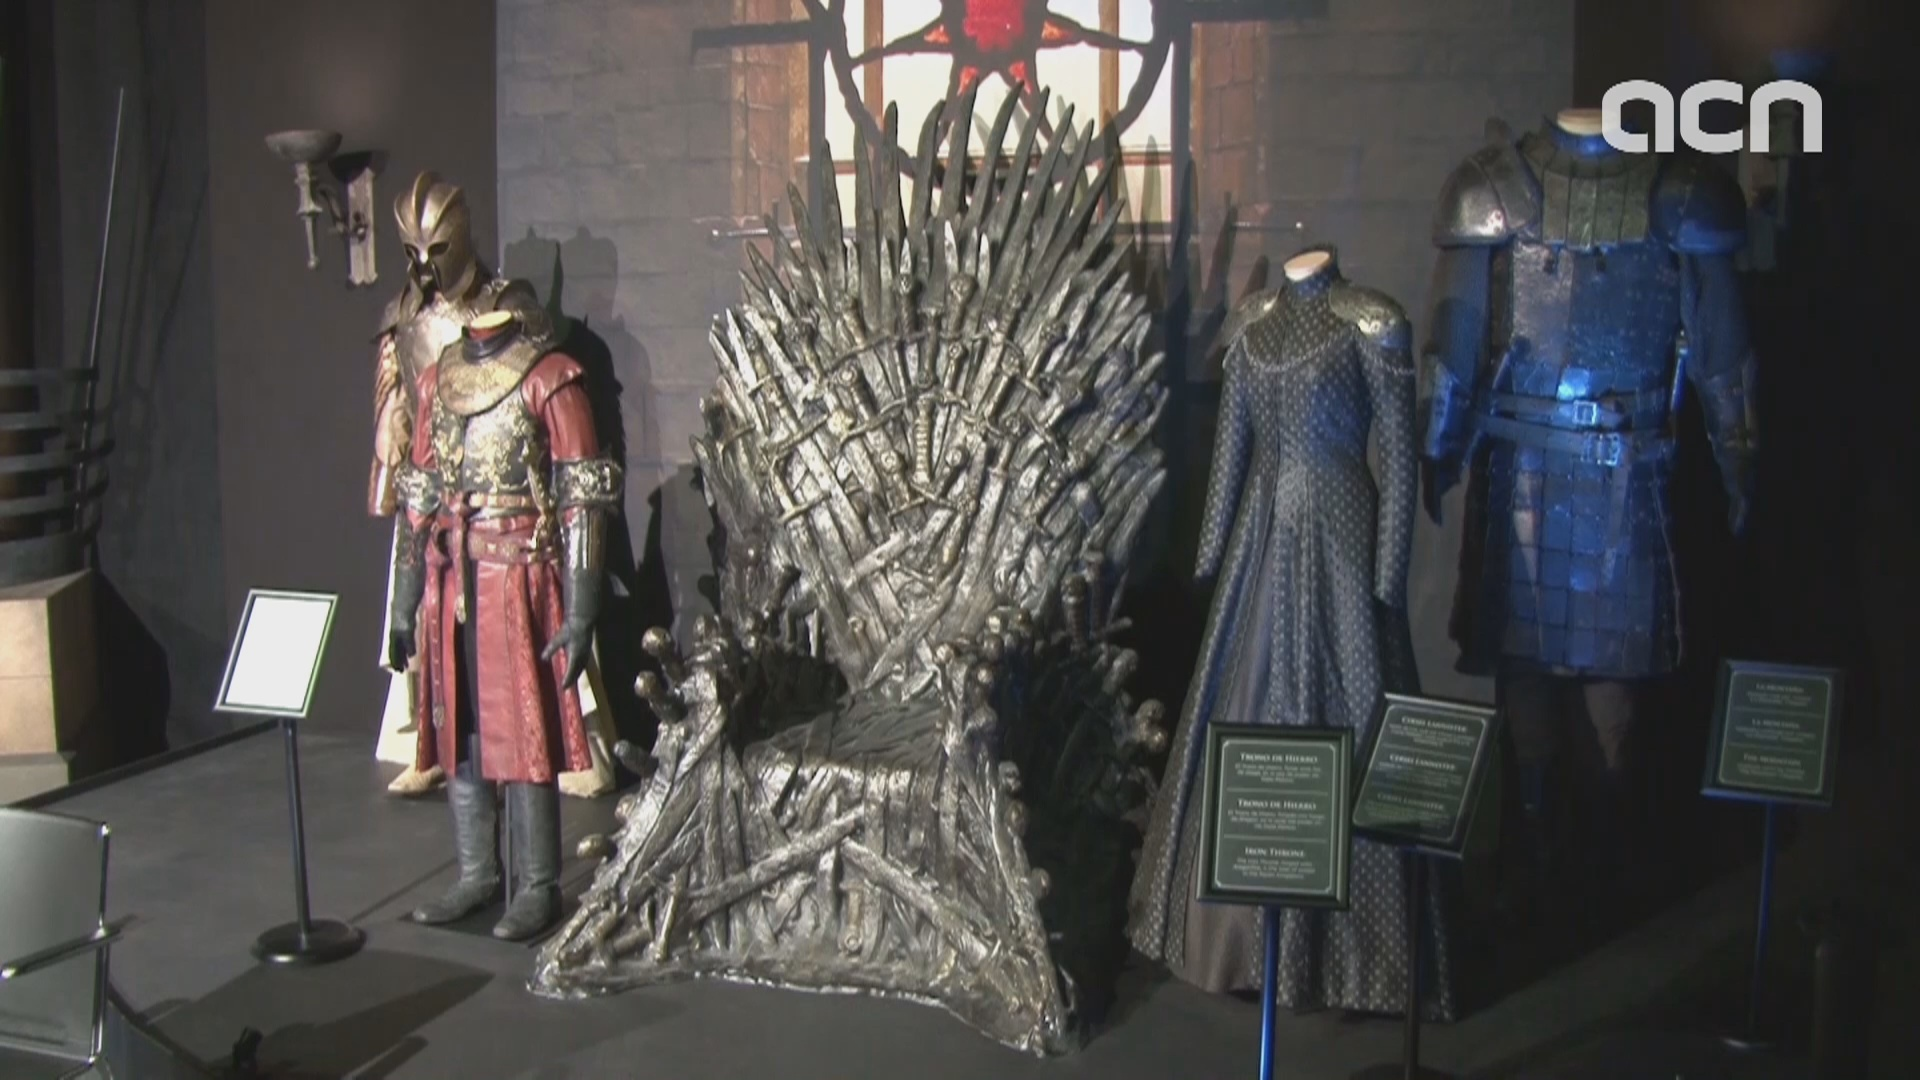 'Game of Thrones' exhibition starts world tour at Barcelona's Maritime Museum